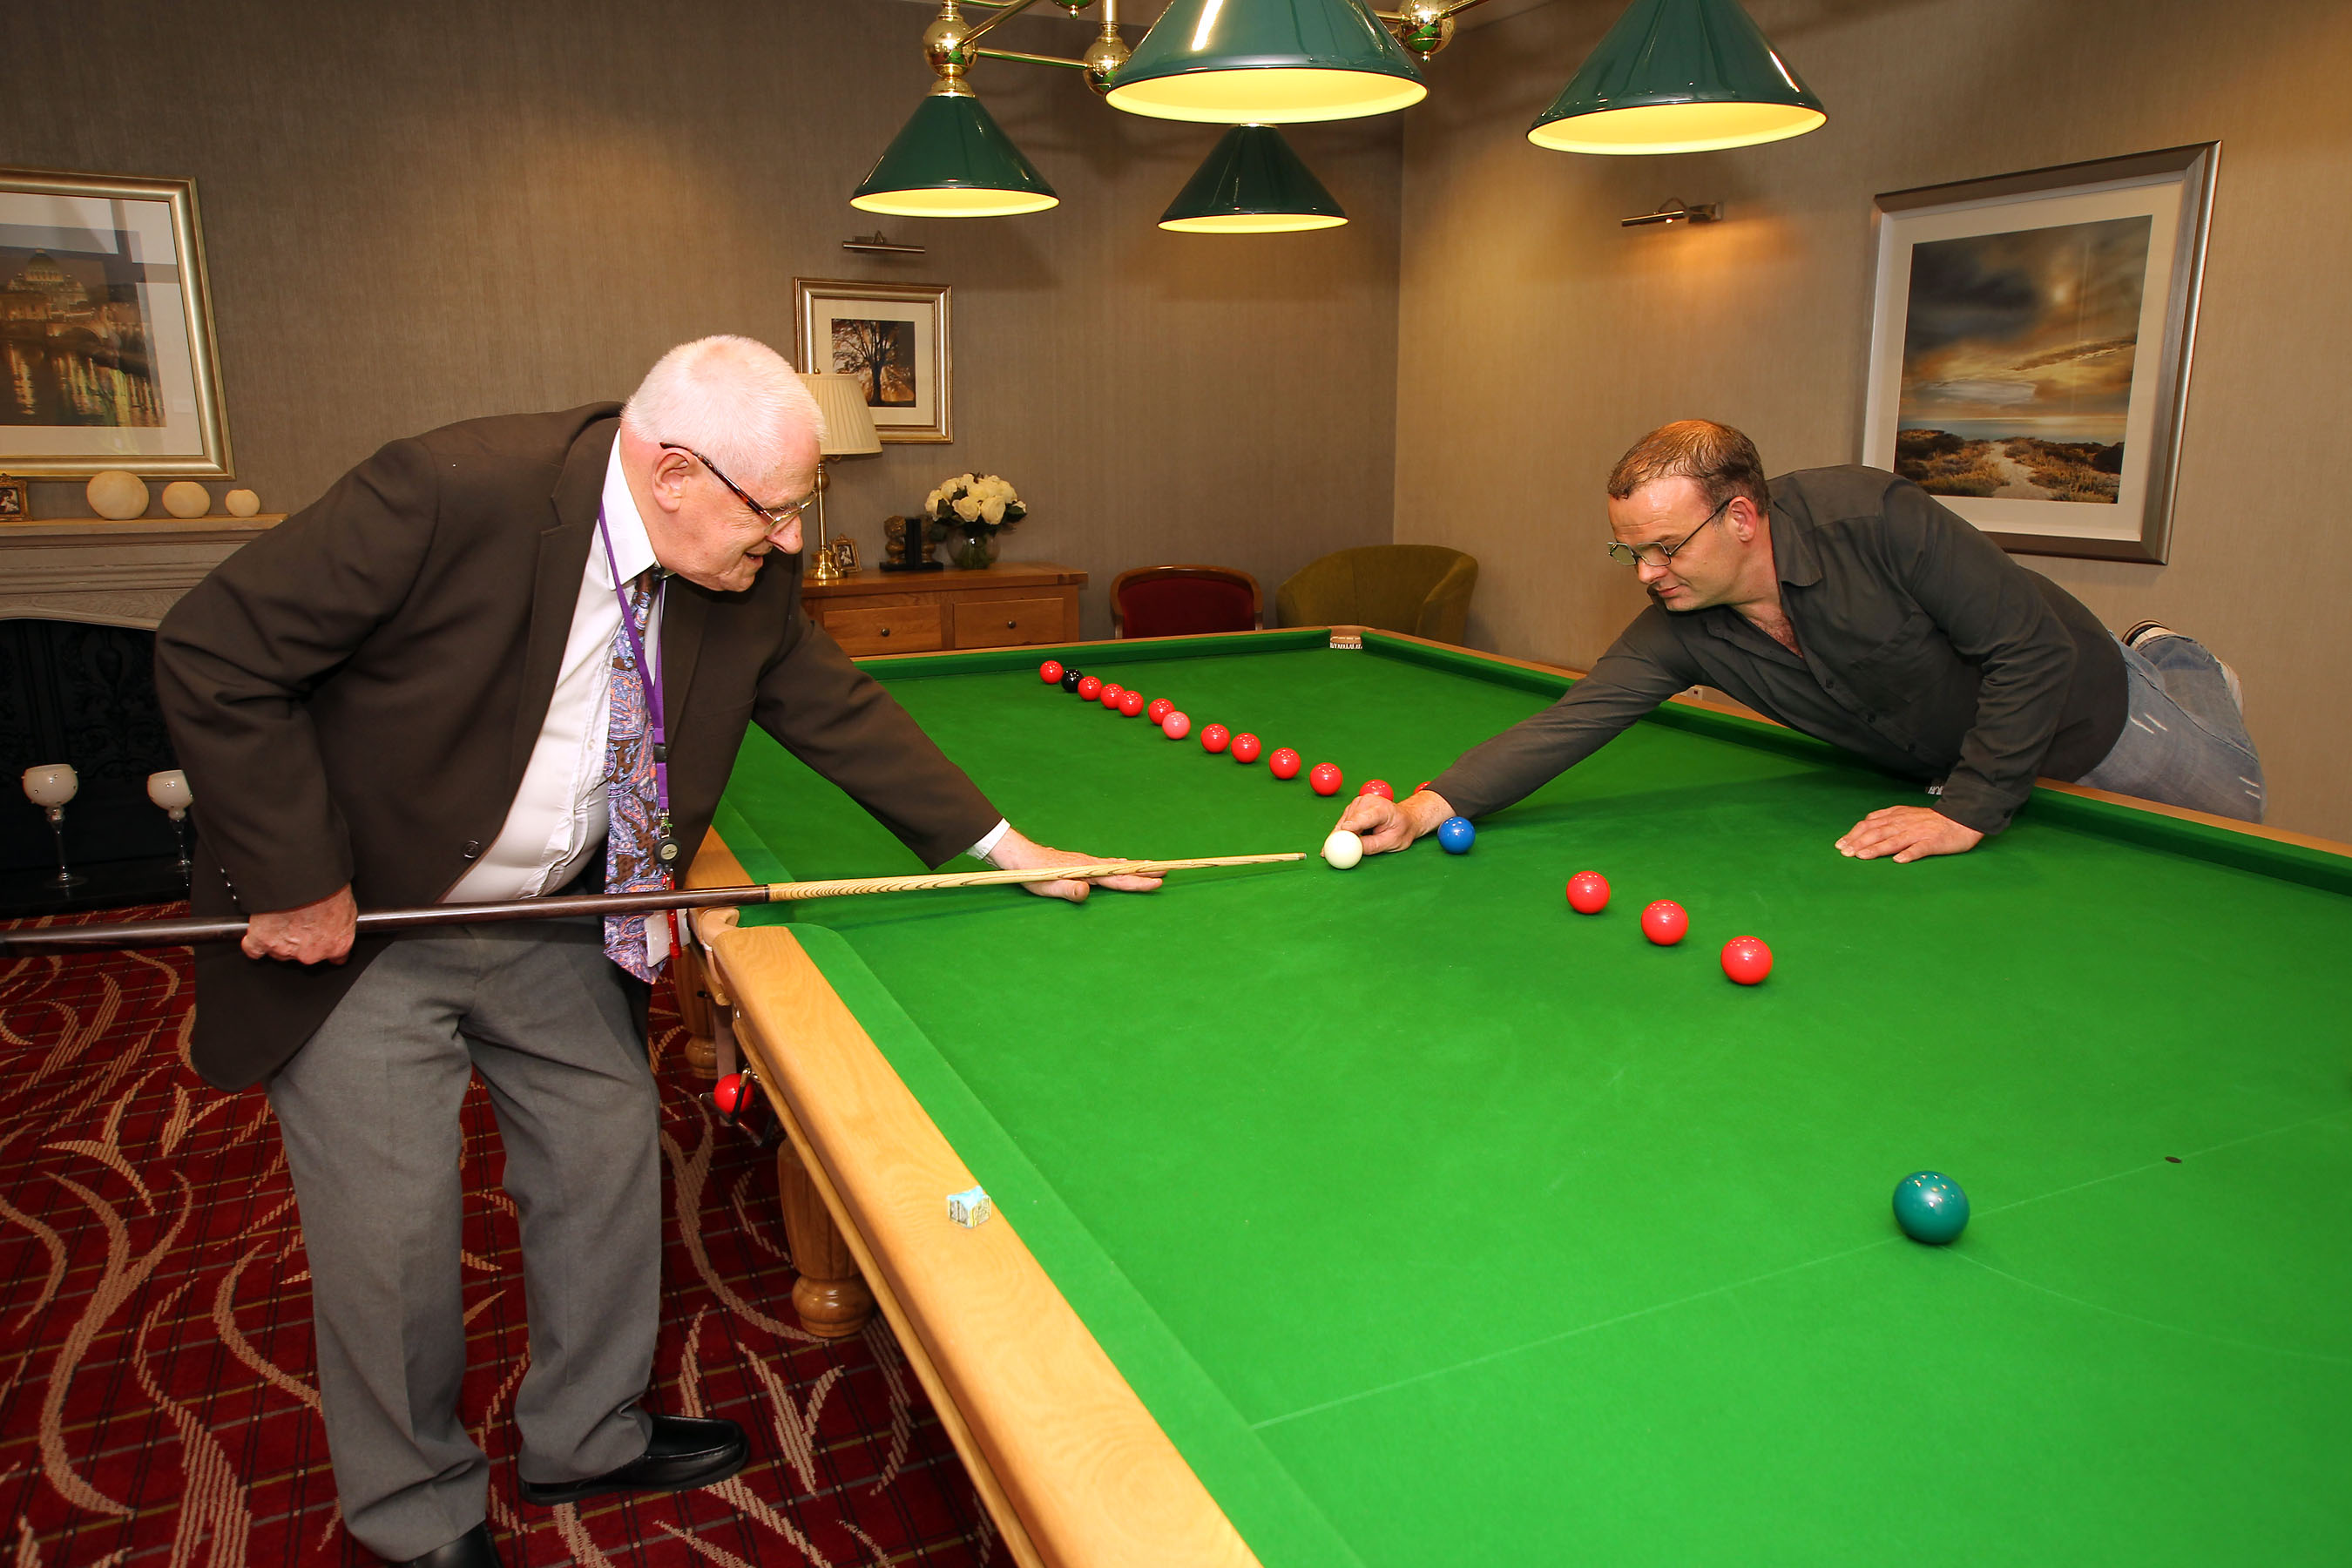 Snooker interest group